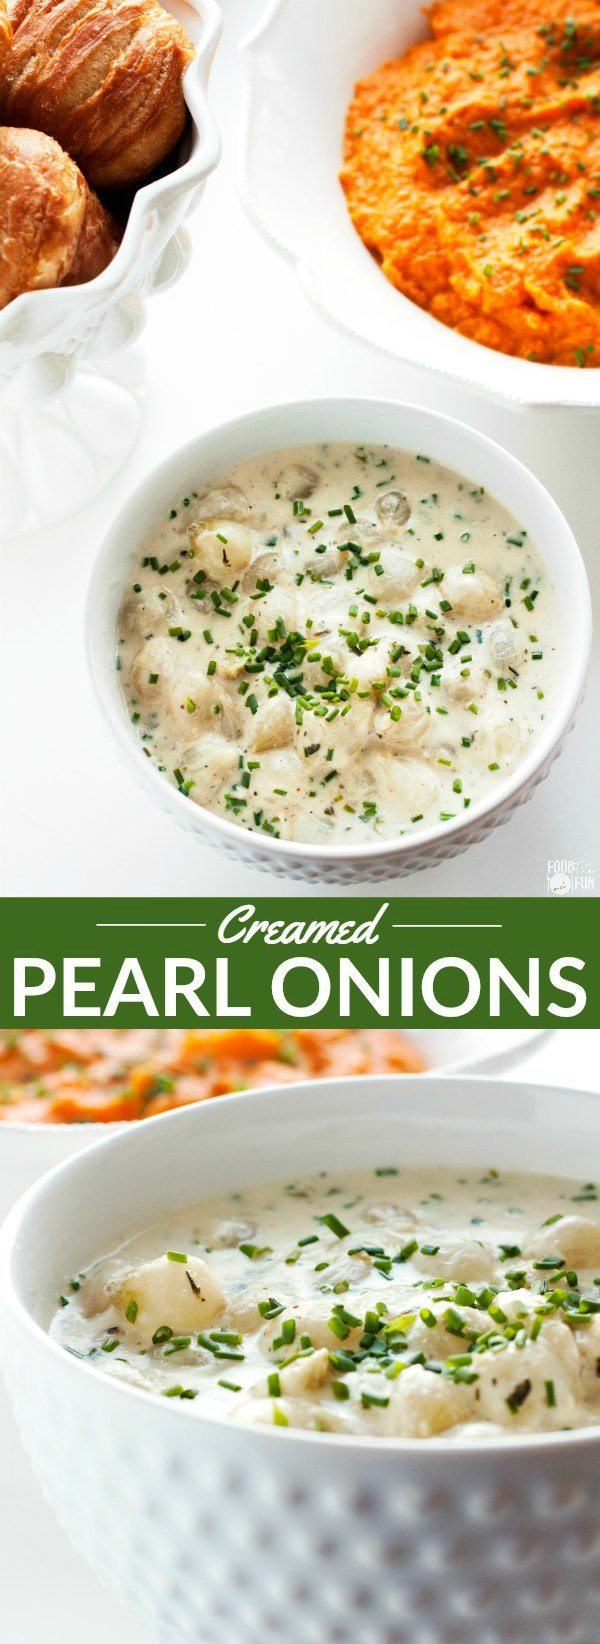 Overheard picture of creamed pearl onions.